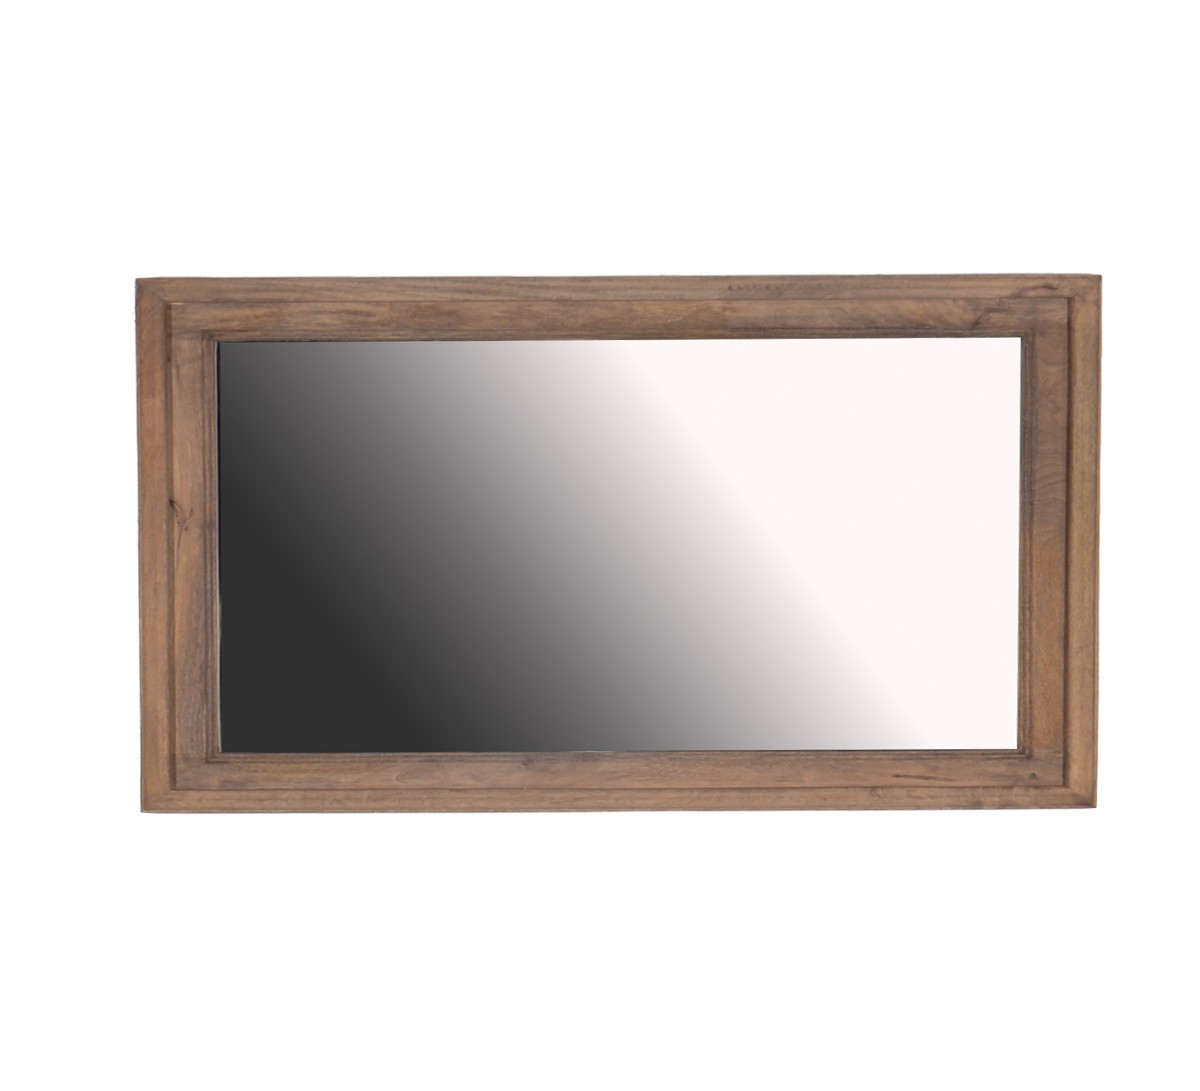 Miroir 90 x 60 id es de d coration int rieure french decor for Miroir 110 x 90